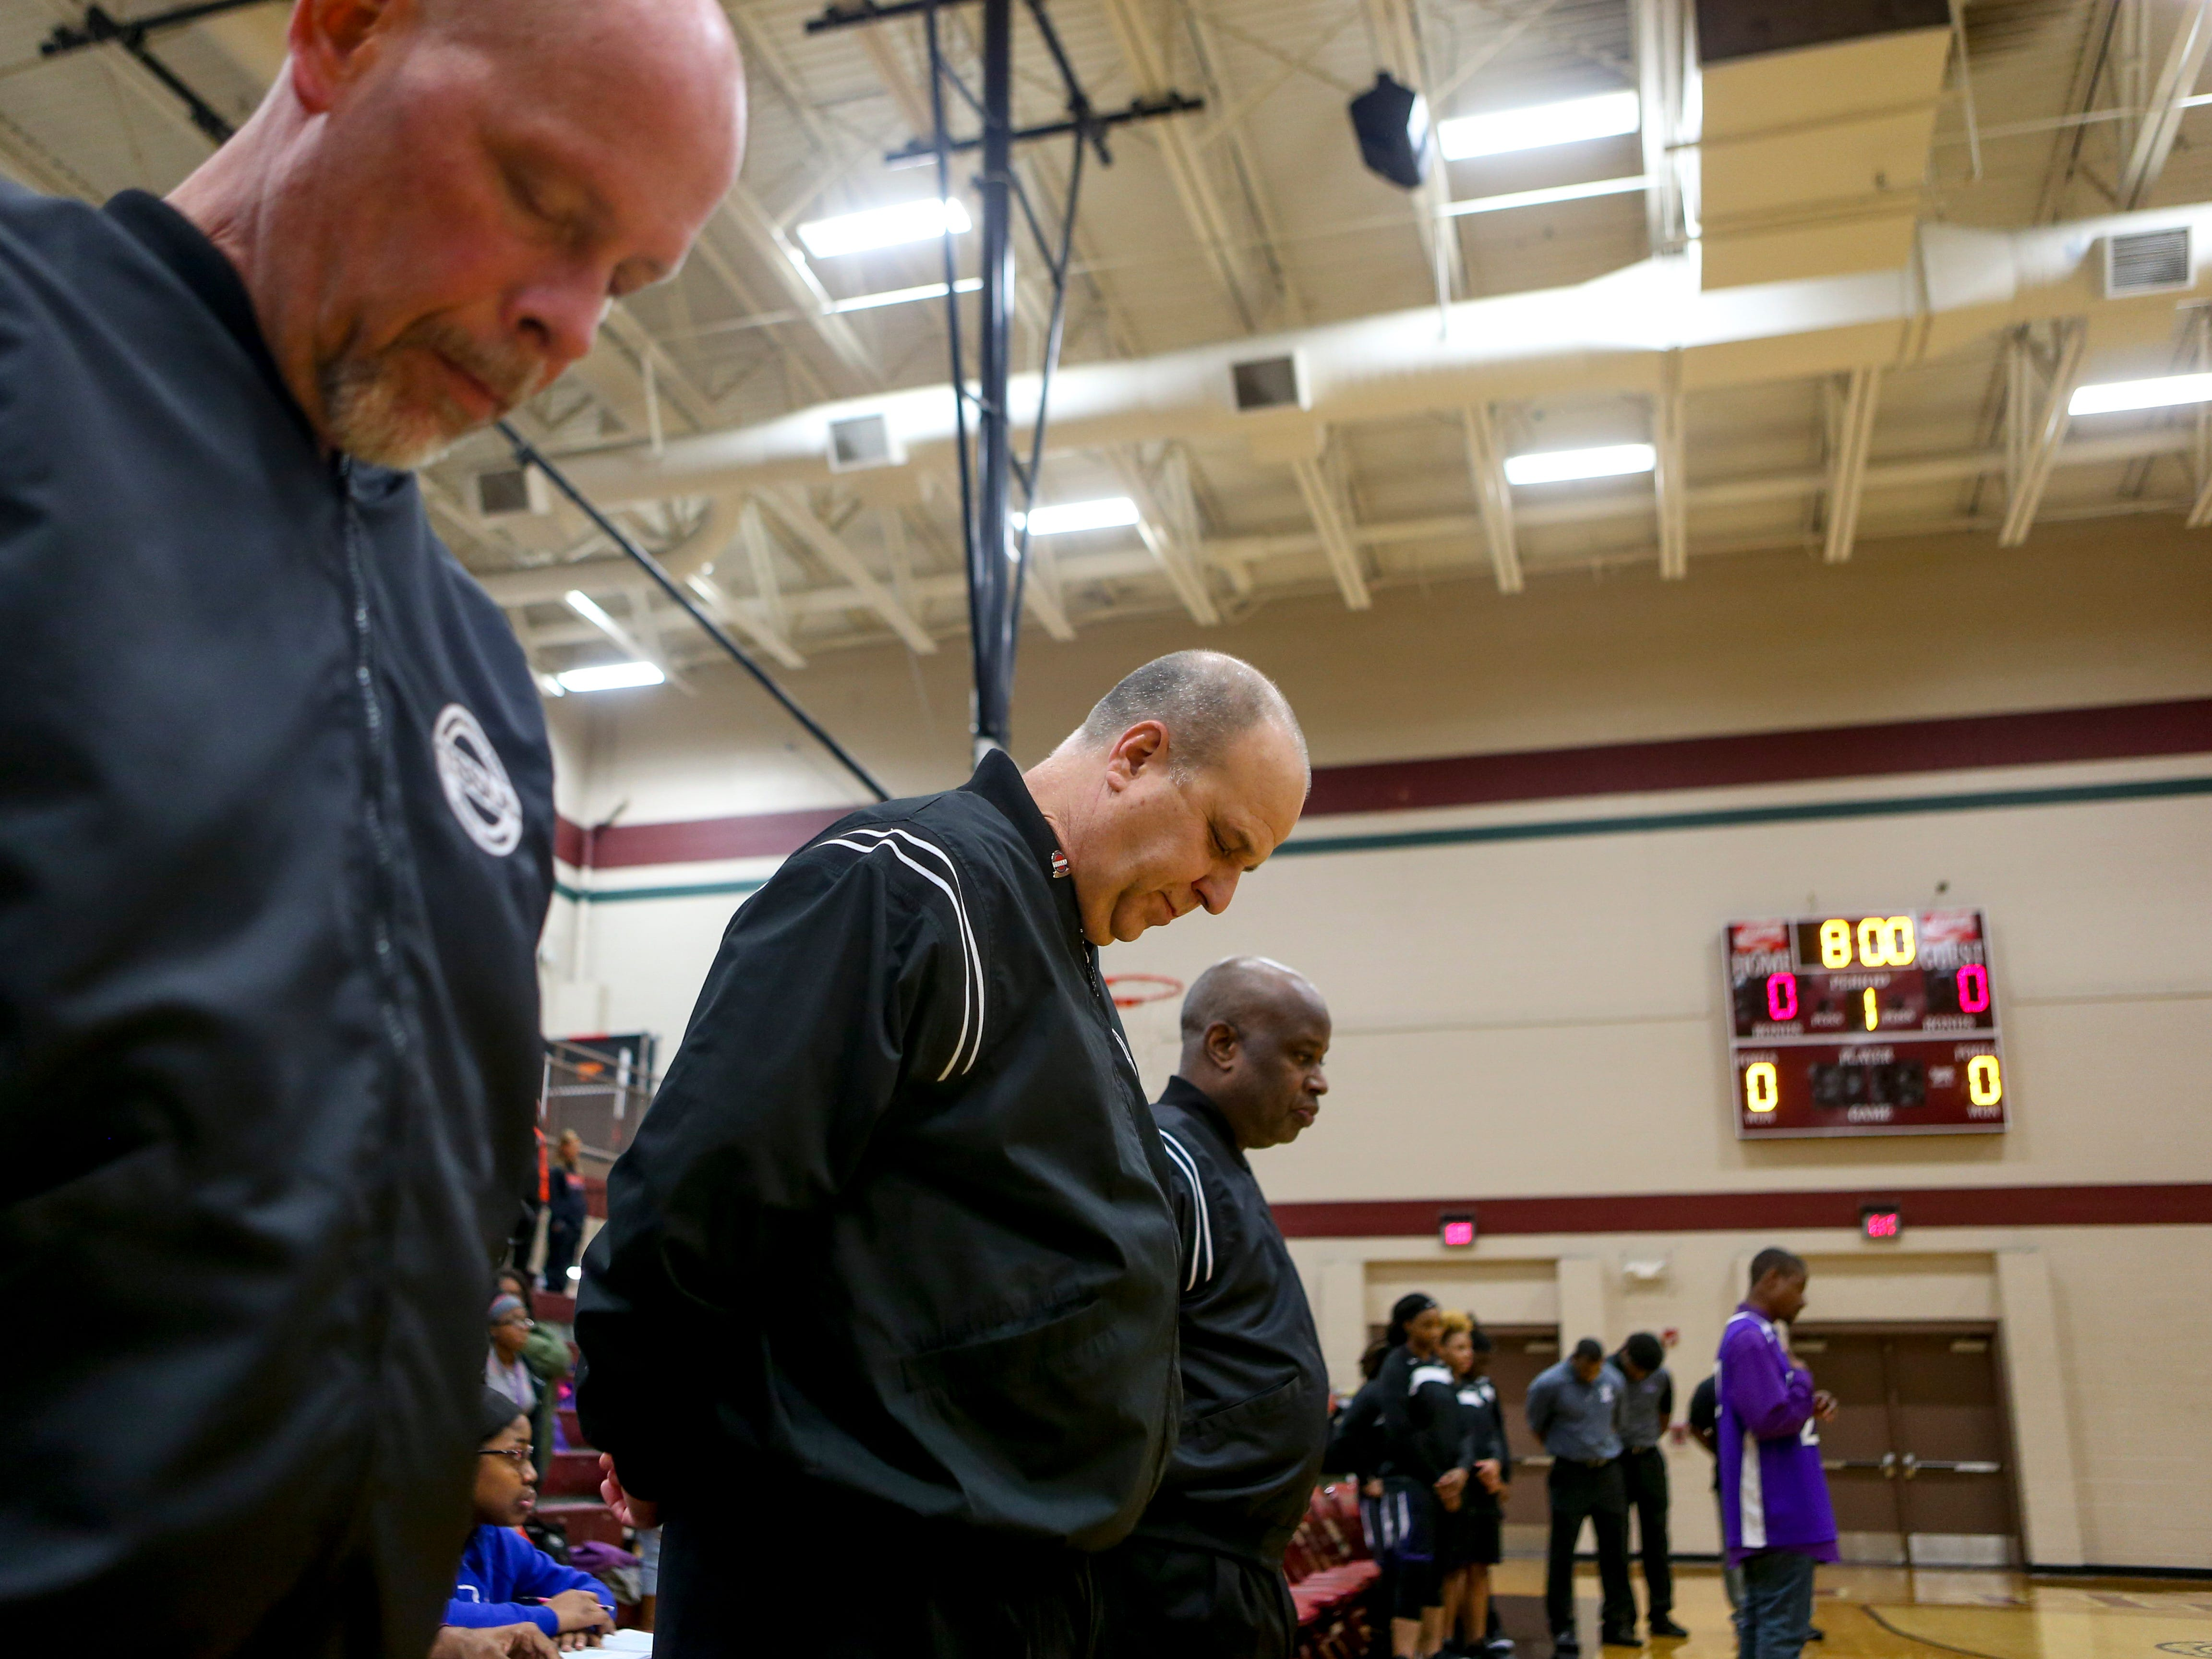 Referees bow their heads during a moment of silence held for Nyema and Nyjah Jackson at a TSSAA girls basketball game where Liberty played Ripley High School at Liberty Tech High School in Jackson, Tenn., on Tuesday, Dec. 4, 2018.